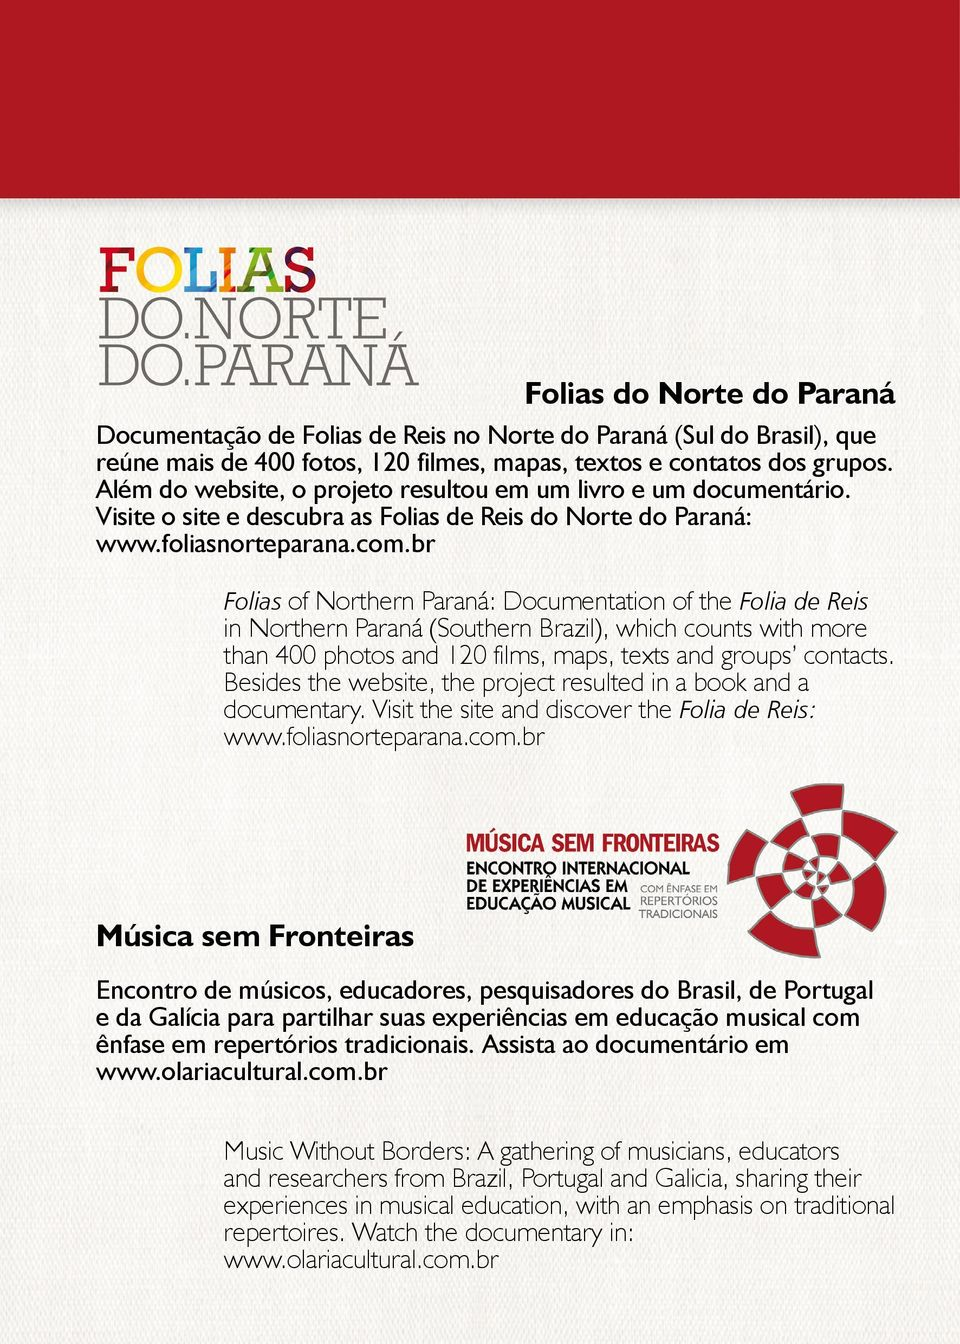 br Folias of Northern Paraná: Documentation of the Folia de Reis in Northern Paraná (Southern Brazil), which counts with more than 400 photos and 120 films, maps, texts and groups contacts.